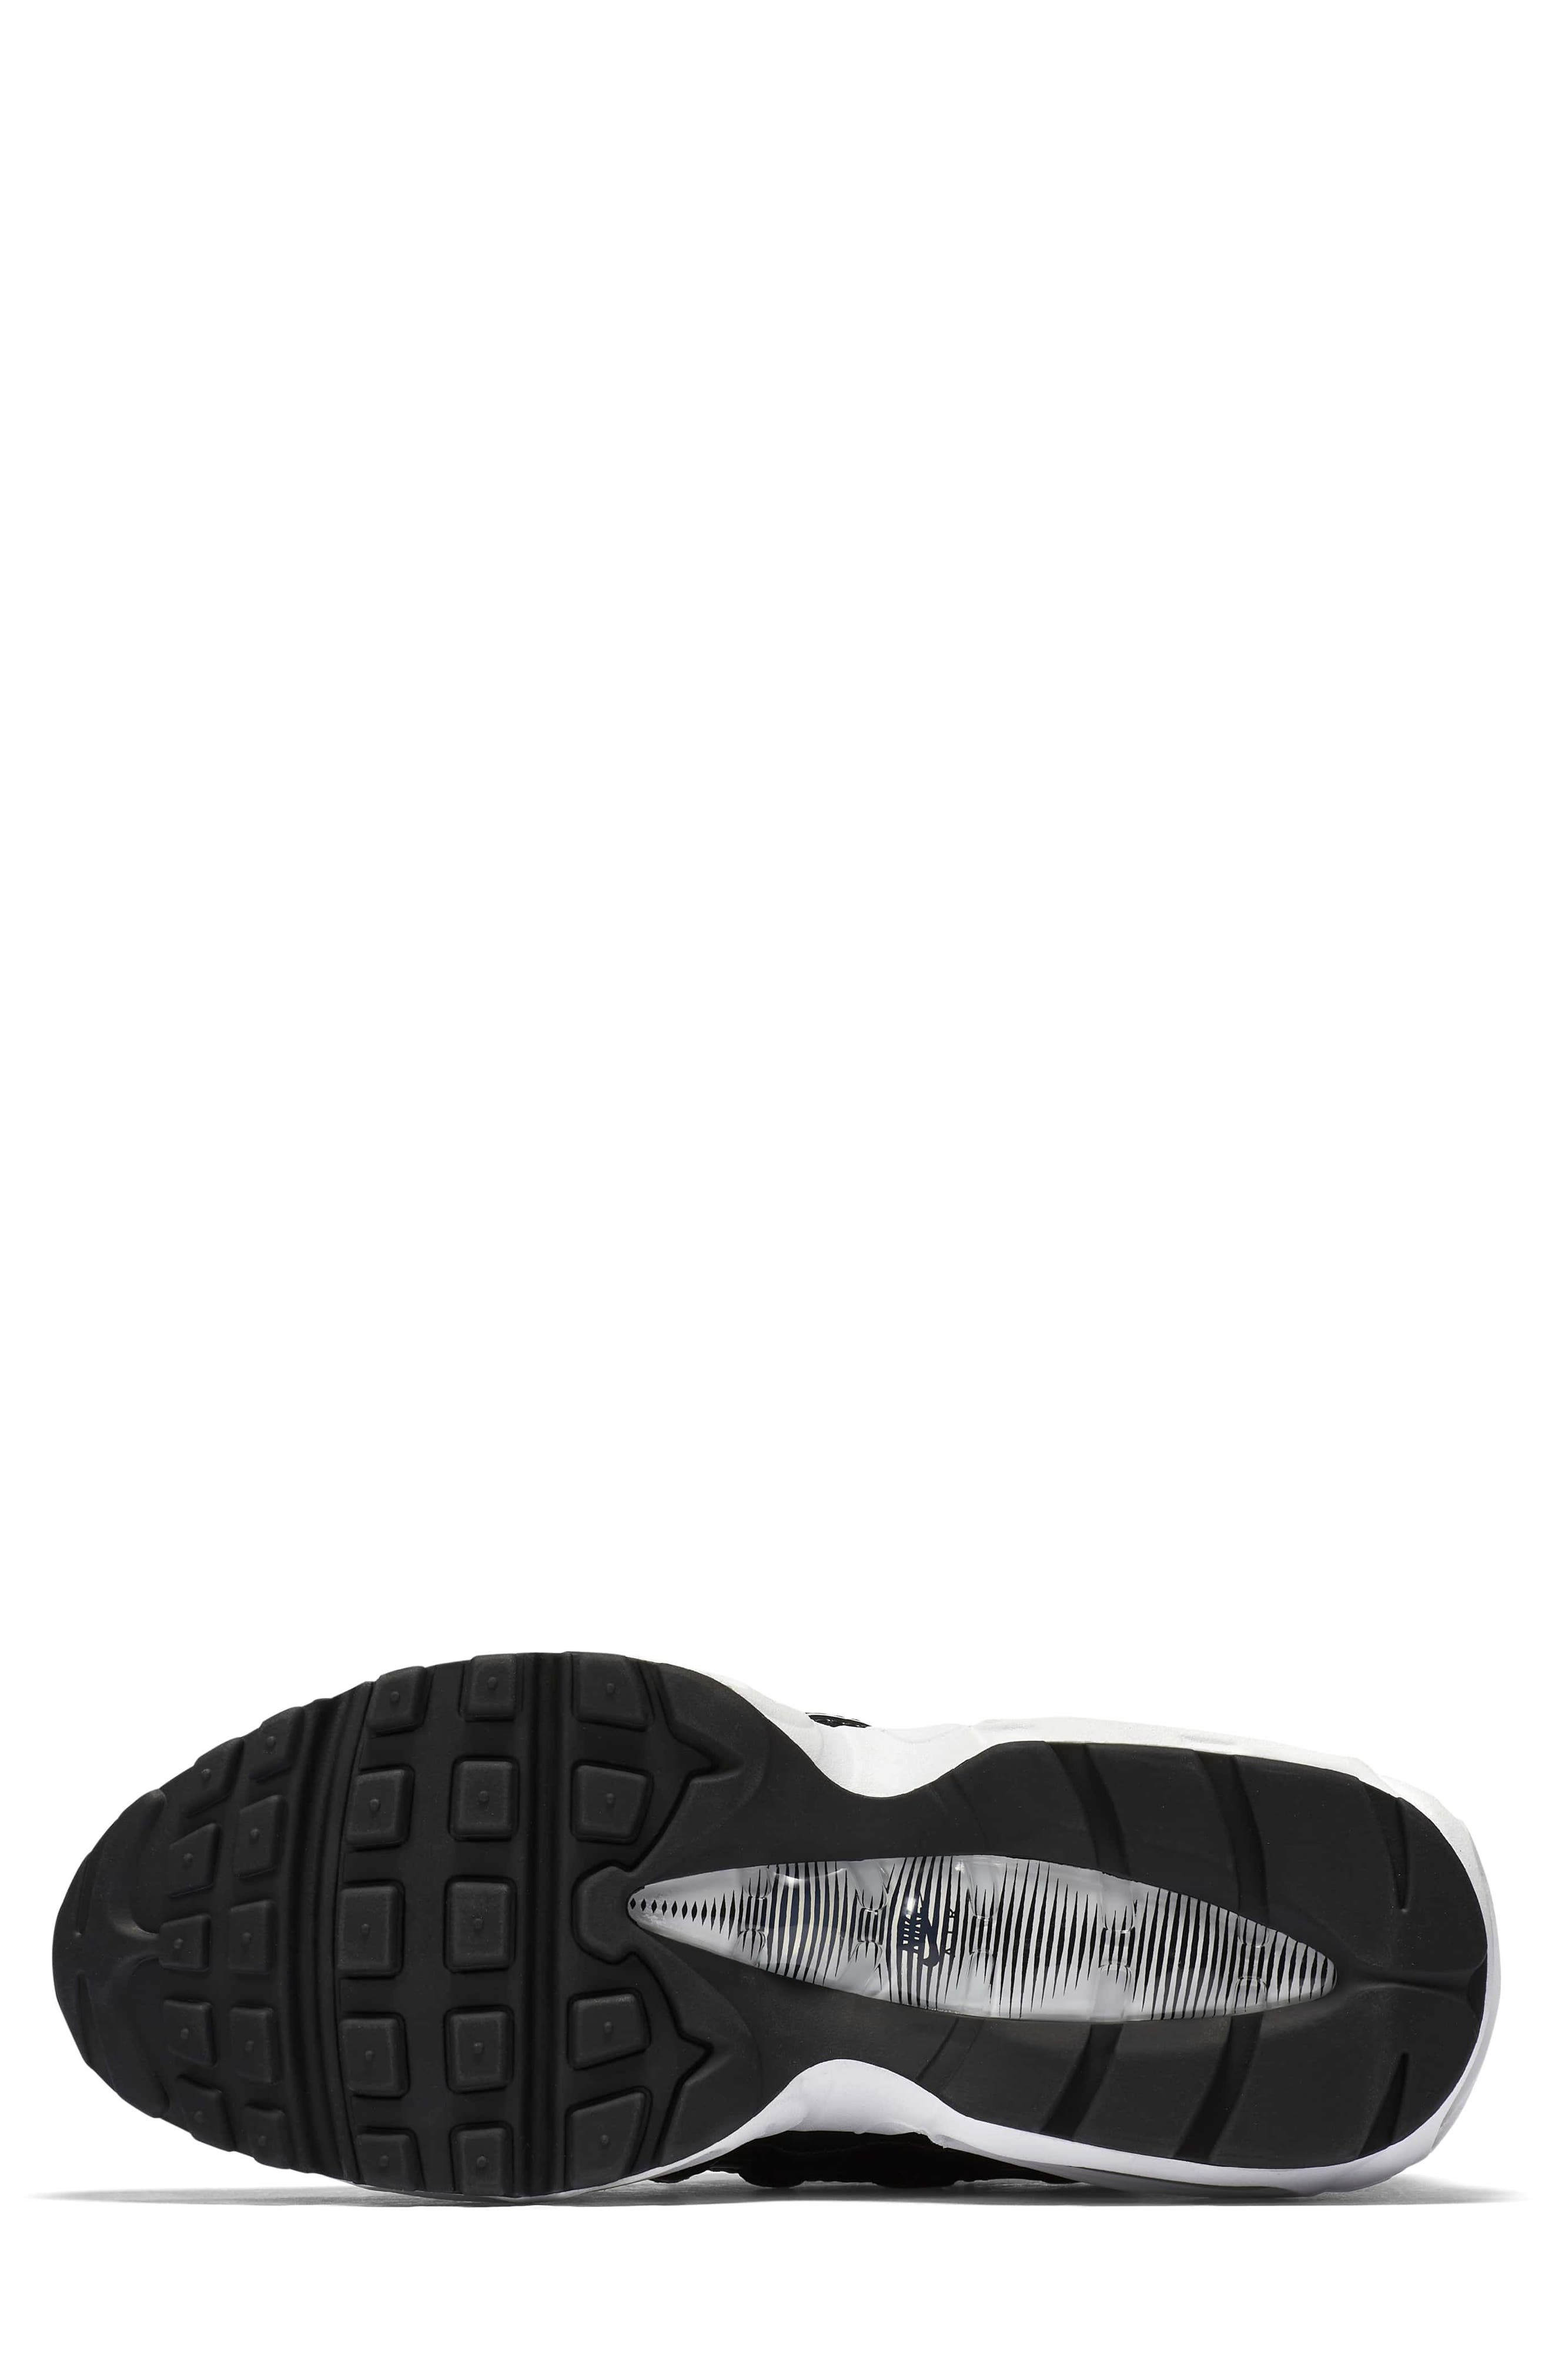 Air Max 95 Special Edition Running Shoe,                             Alternate thumbnail 5, color,                             001